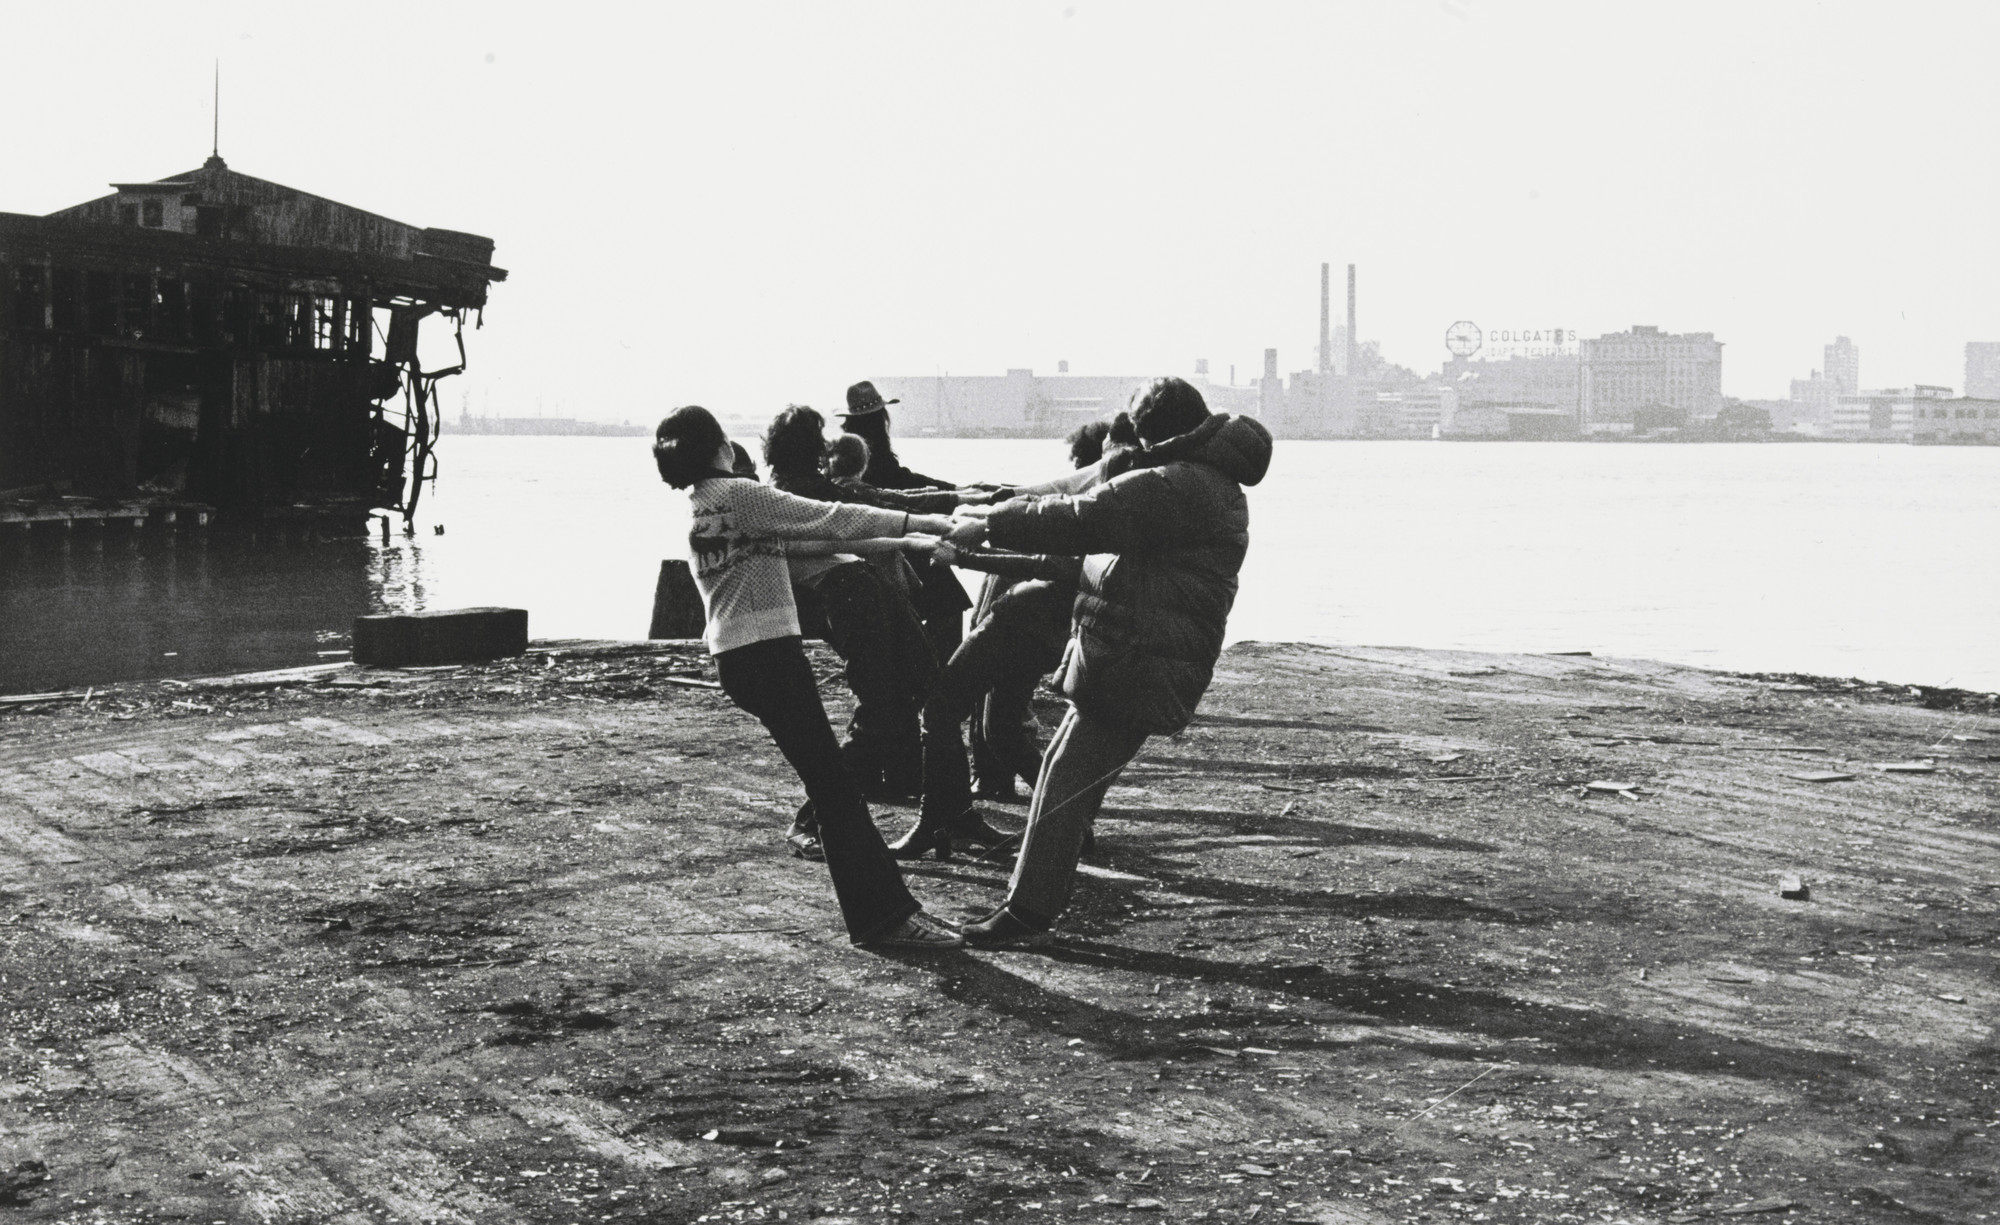 Robert Morris, Harry Shunk, János Kender. 3 Configurations in Anticipation of the Equinox Sunset. 1971